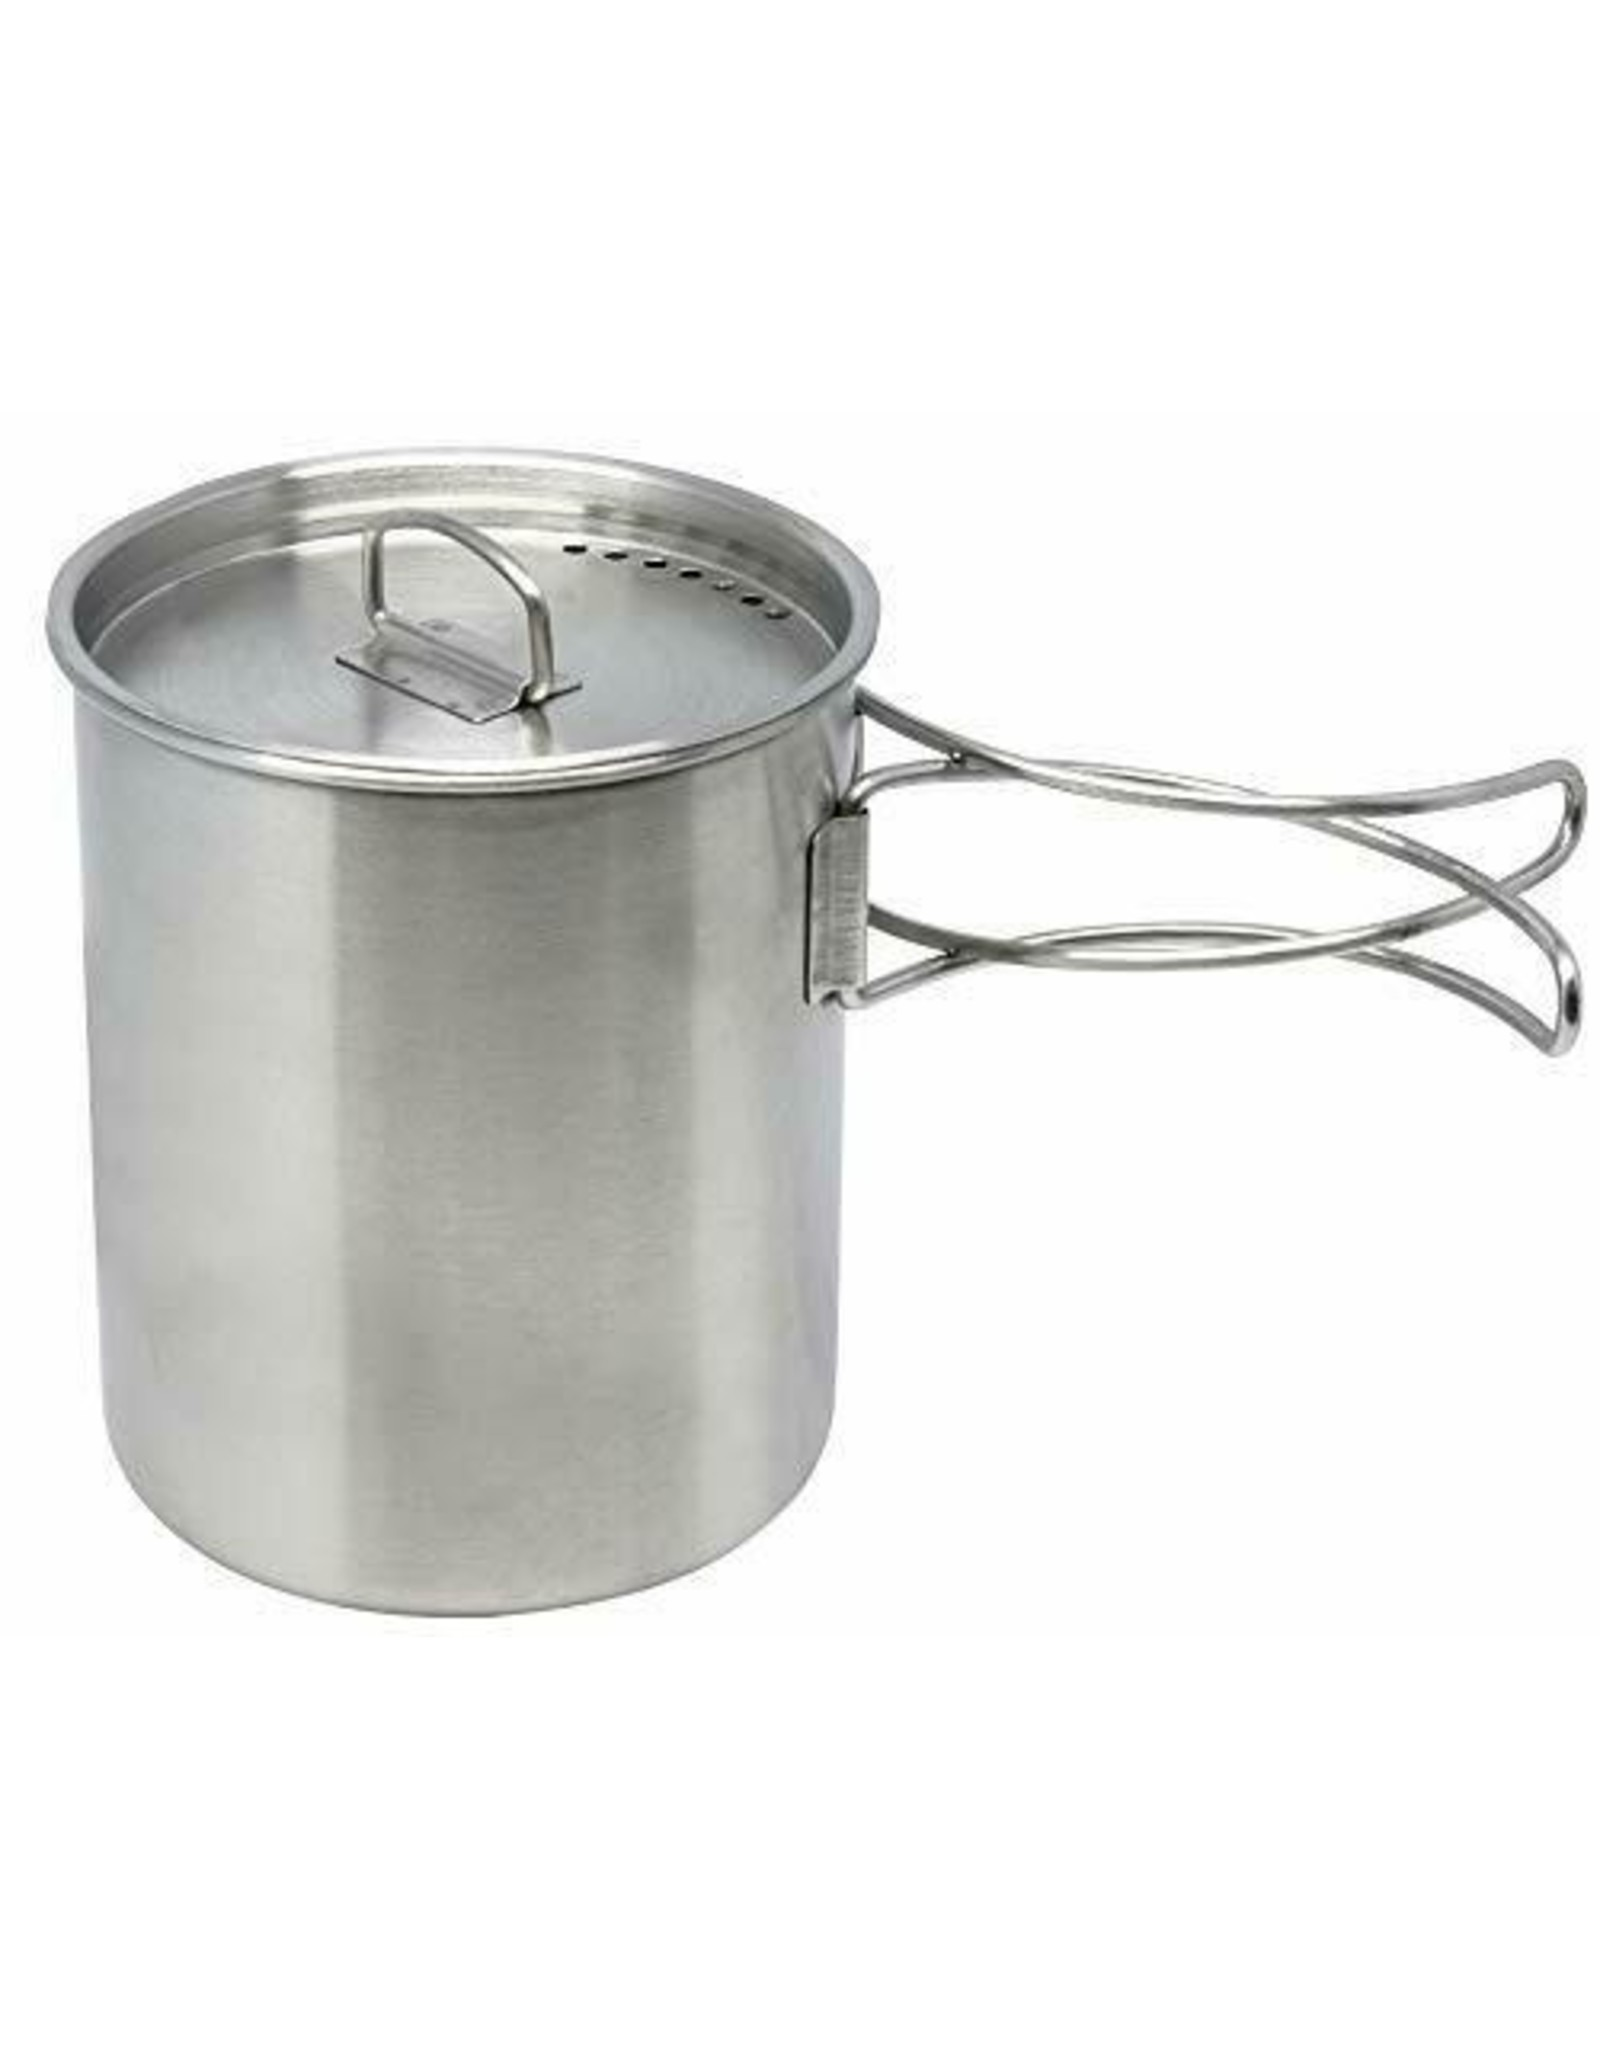 WORLD FAMOUS SALES STAINLESS STEEL MUG-POT WITH LID #691